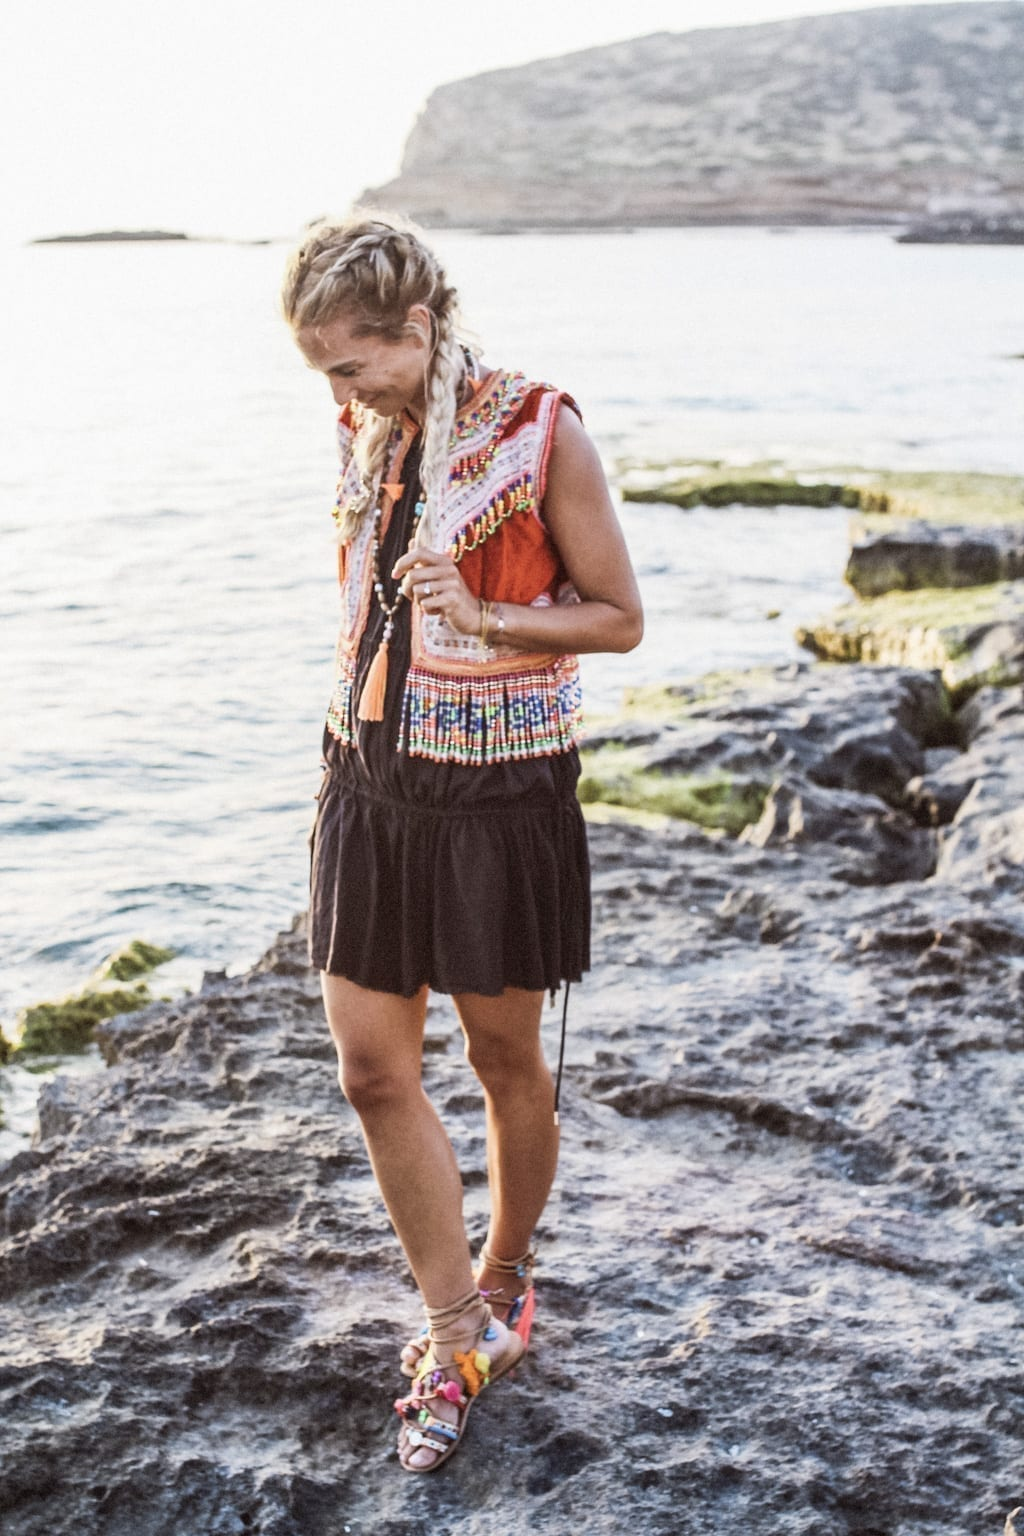 CK1605_Constantly-K-Karin-Kaswurm-Ibiza-Fashion-Beach-Style-At-The-Sea-Boho-Chic-Ethno-8598